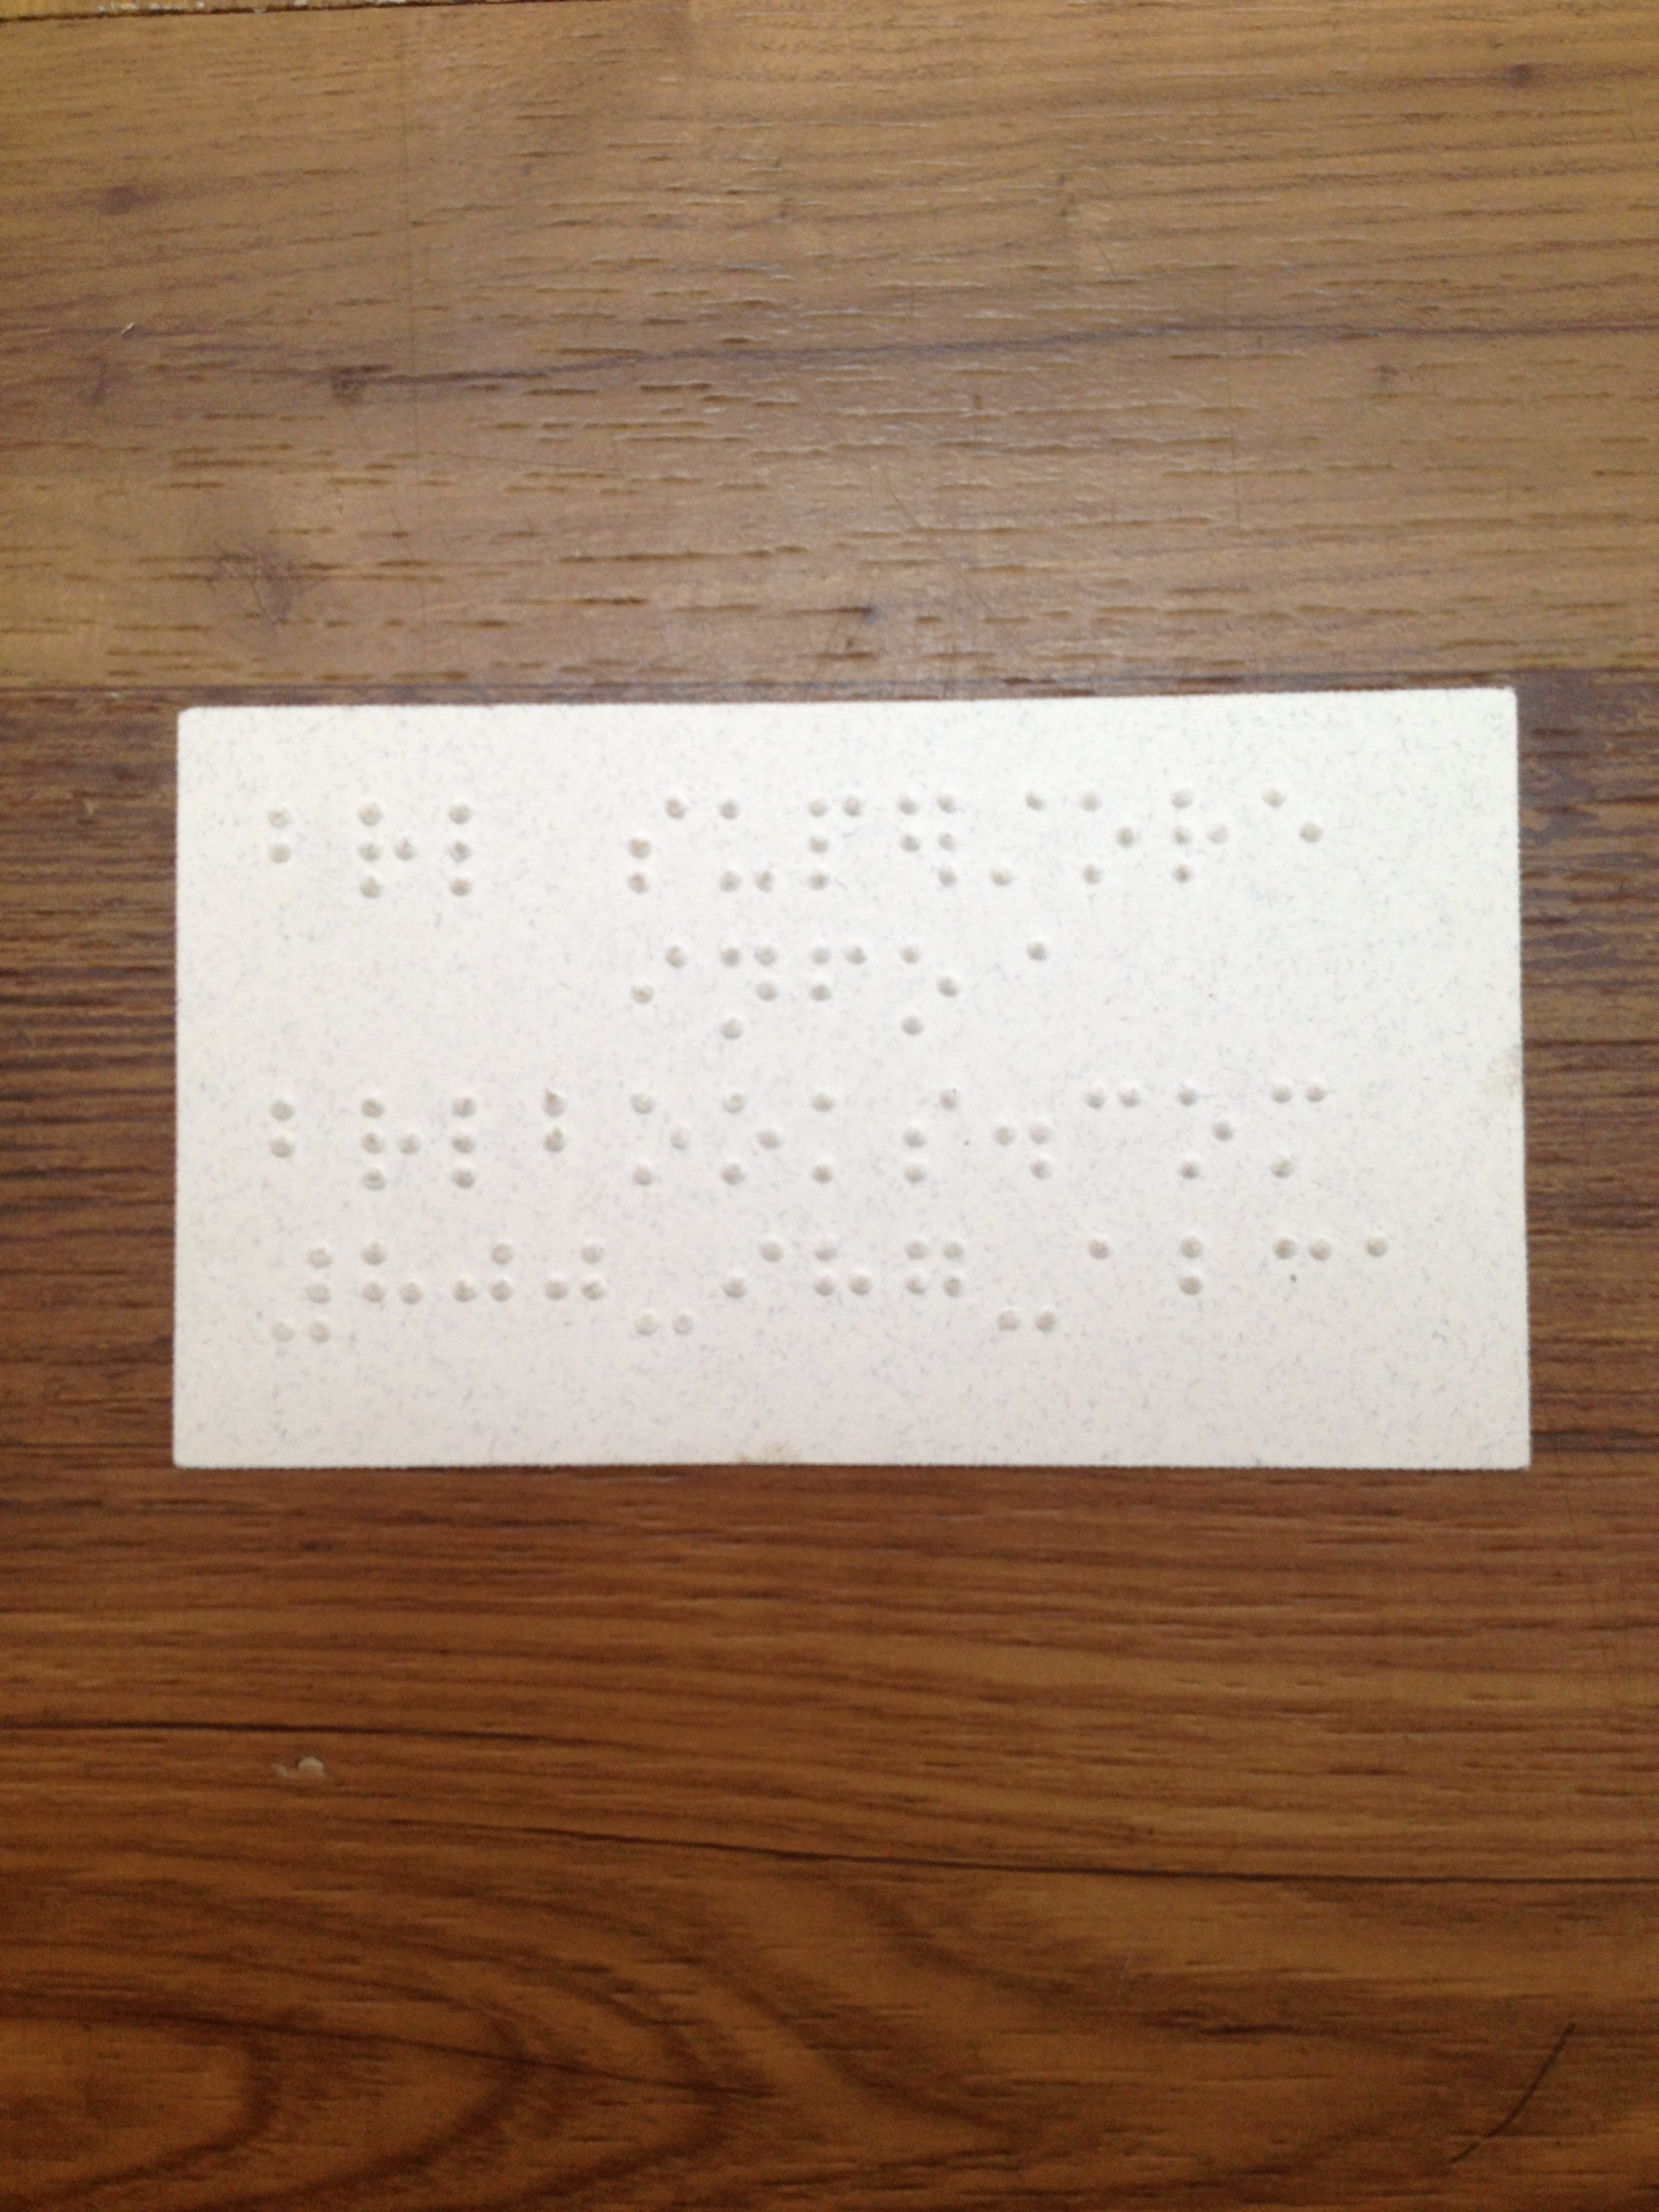 Braillebookstore now offering braille business cards colourmoves